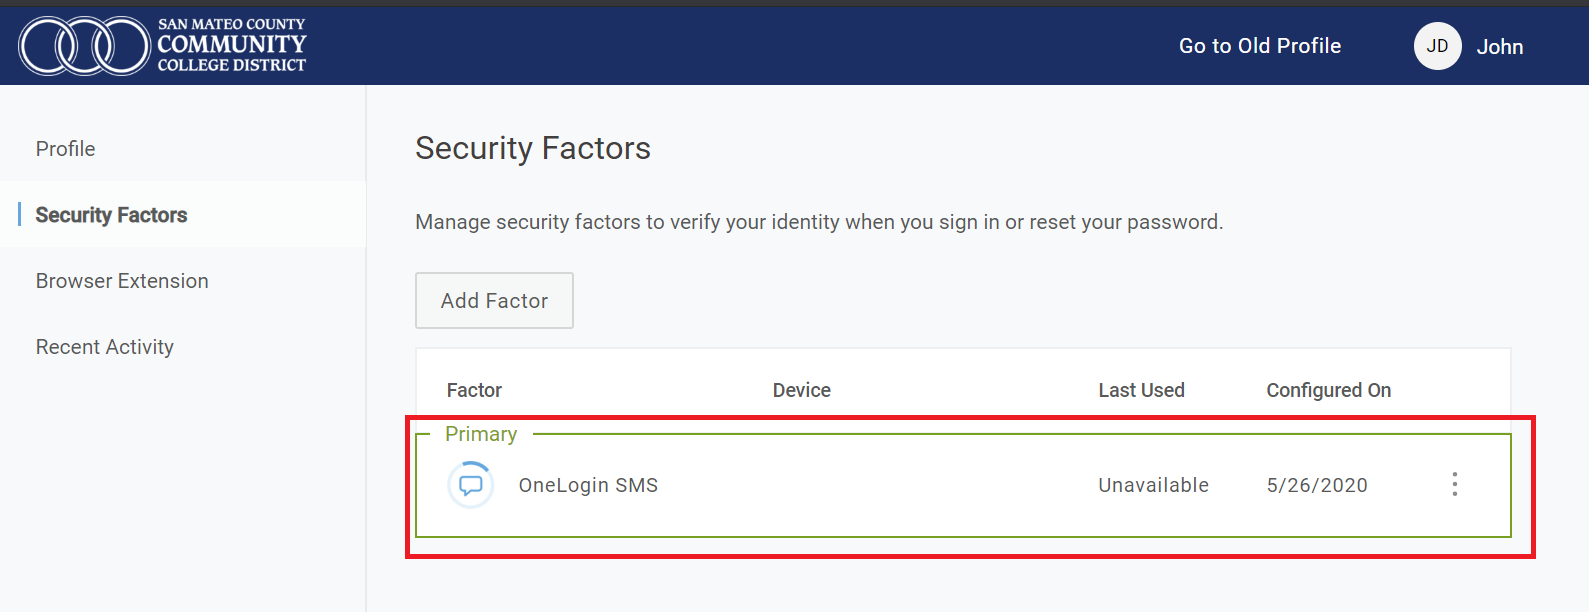 OneLogin SMS is highlighted as primary security factor